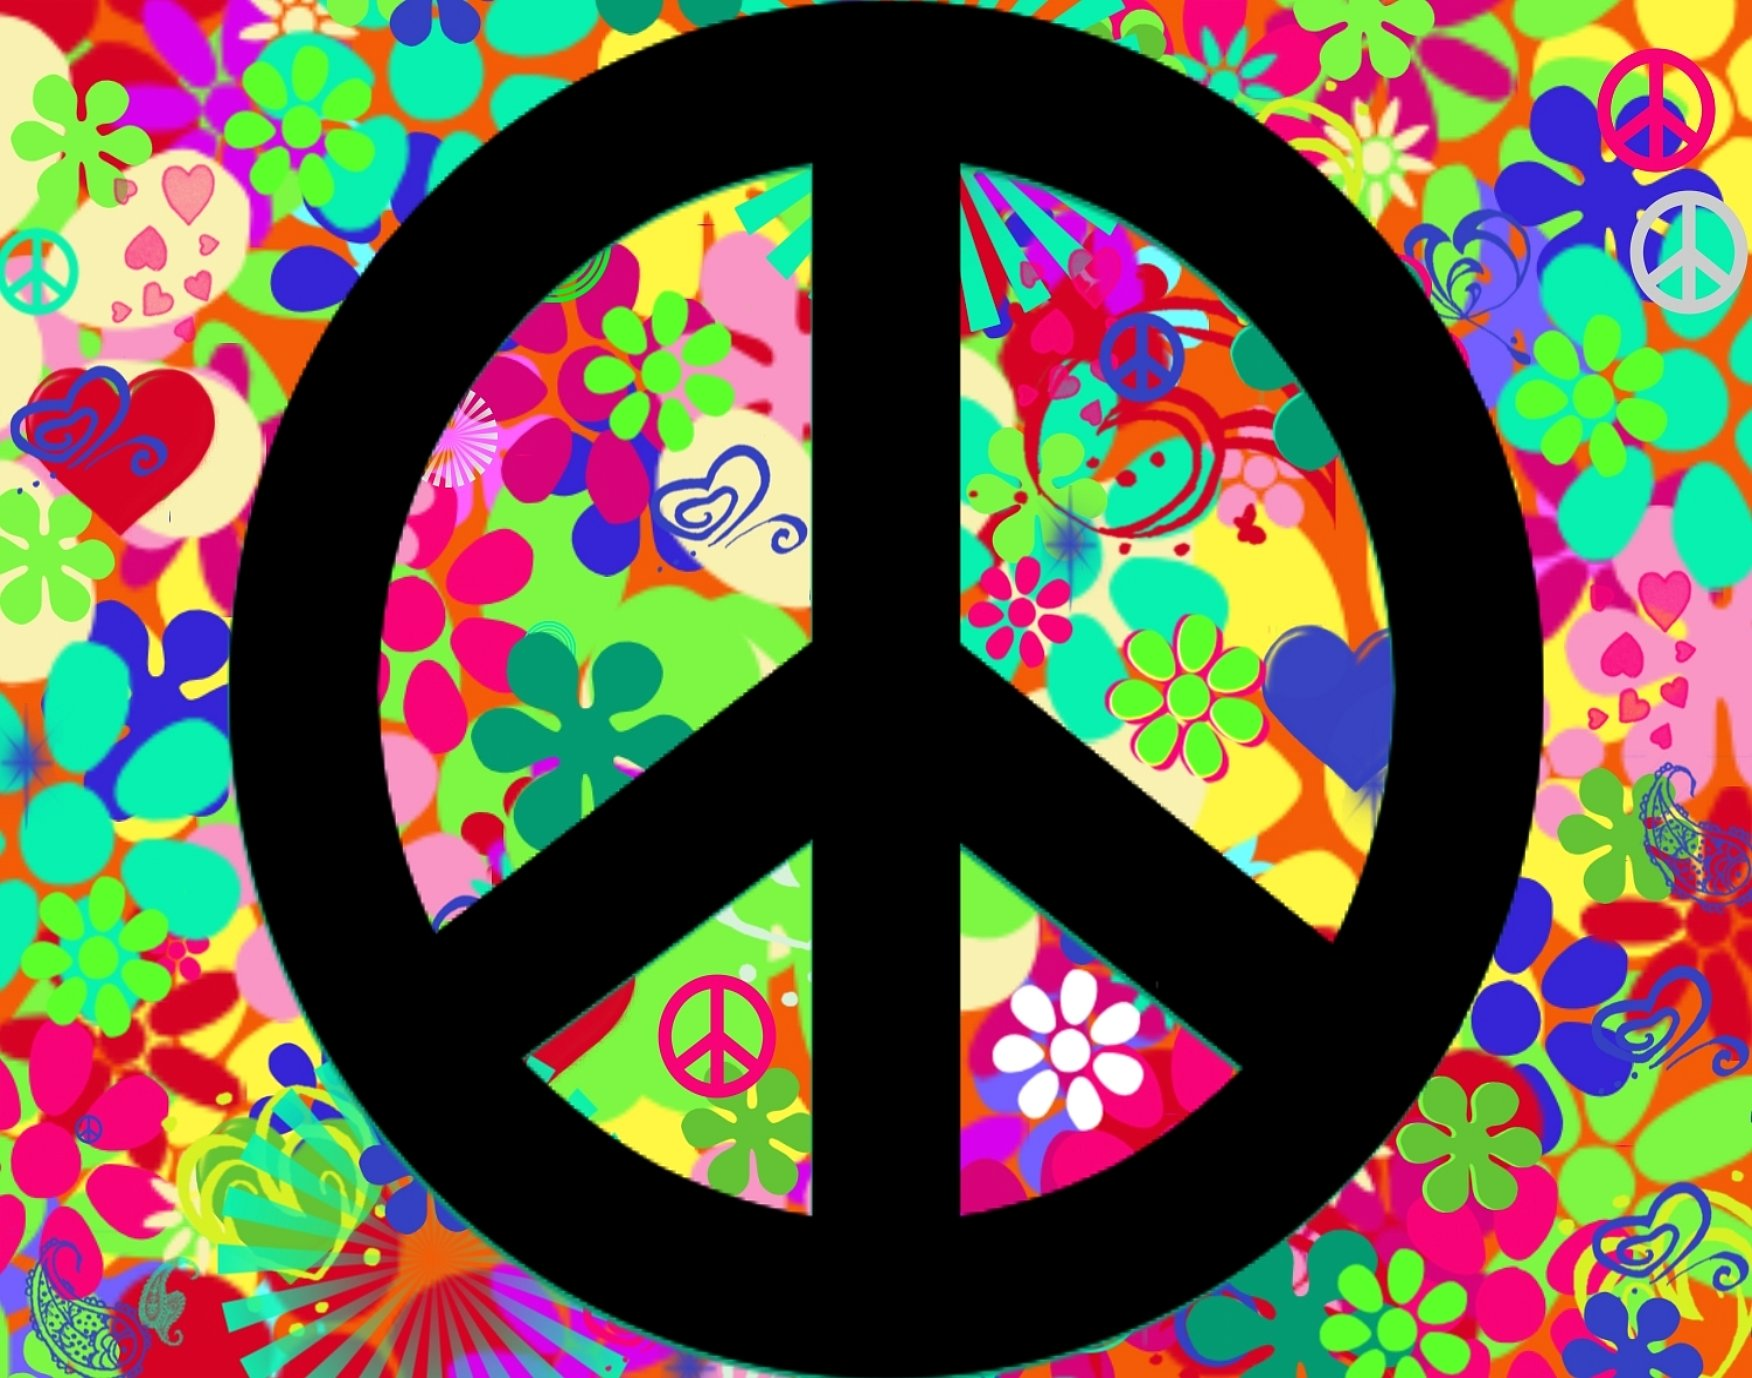 [50+] Peace Sign Pictures for Wallpaper on WallpaperSafari